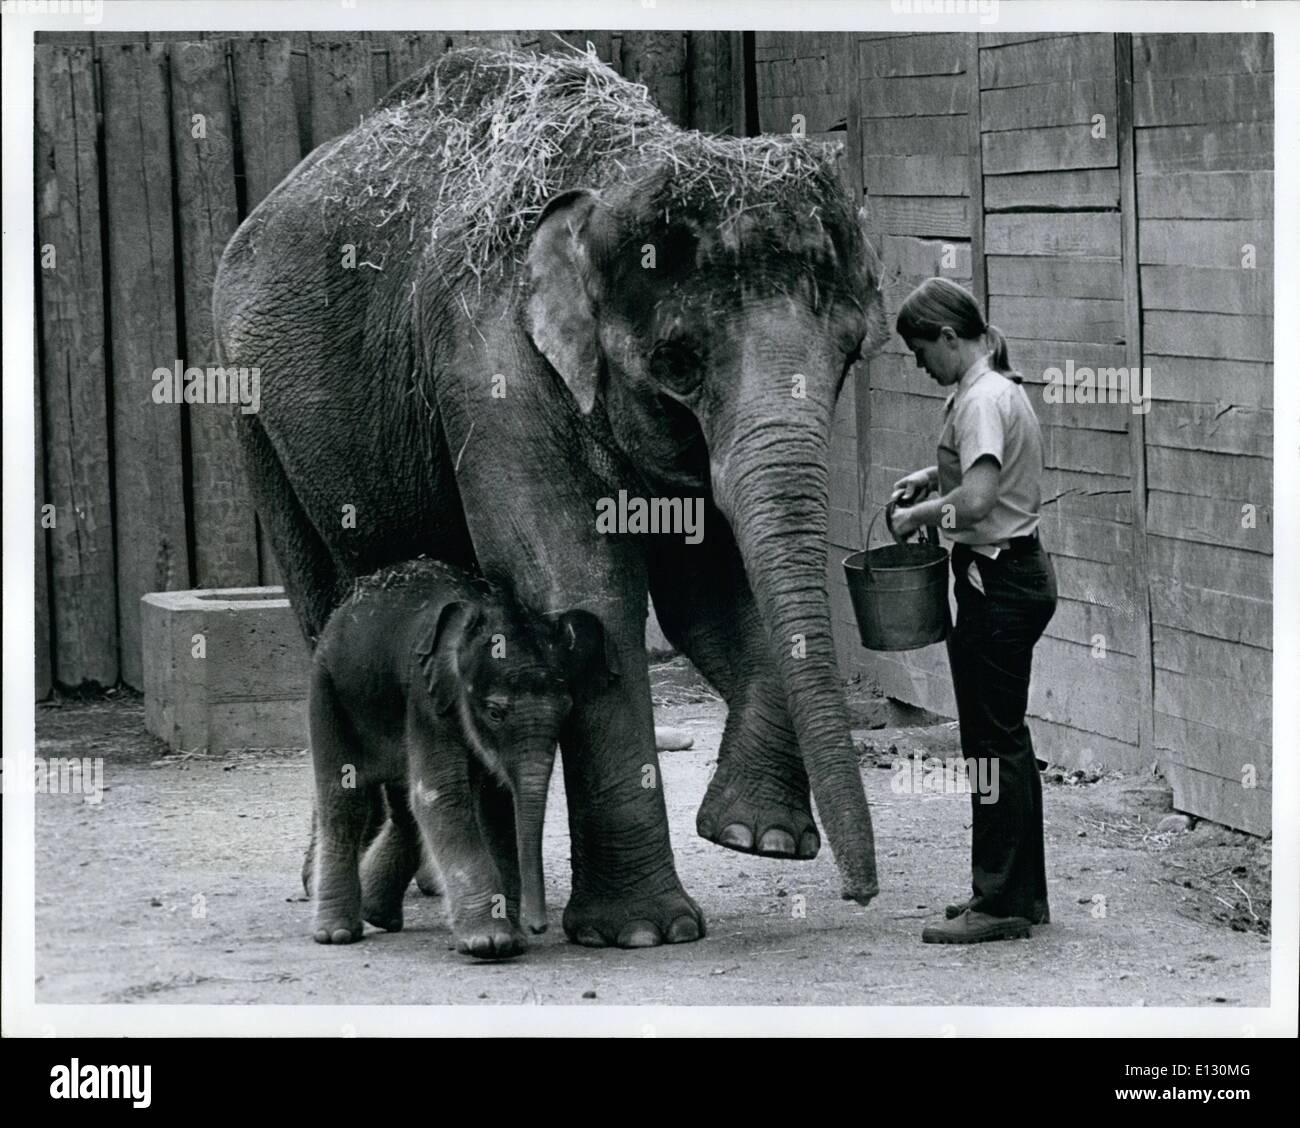 Feb. 26, 2012 - Baby and Mommy Elephant during their feeding time. - Stock Image